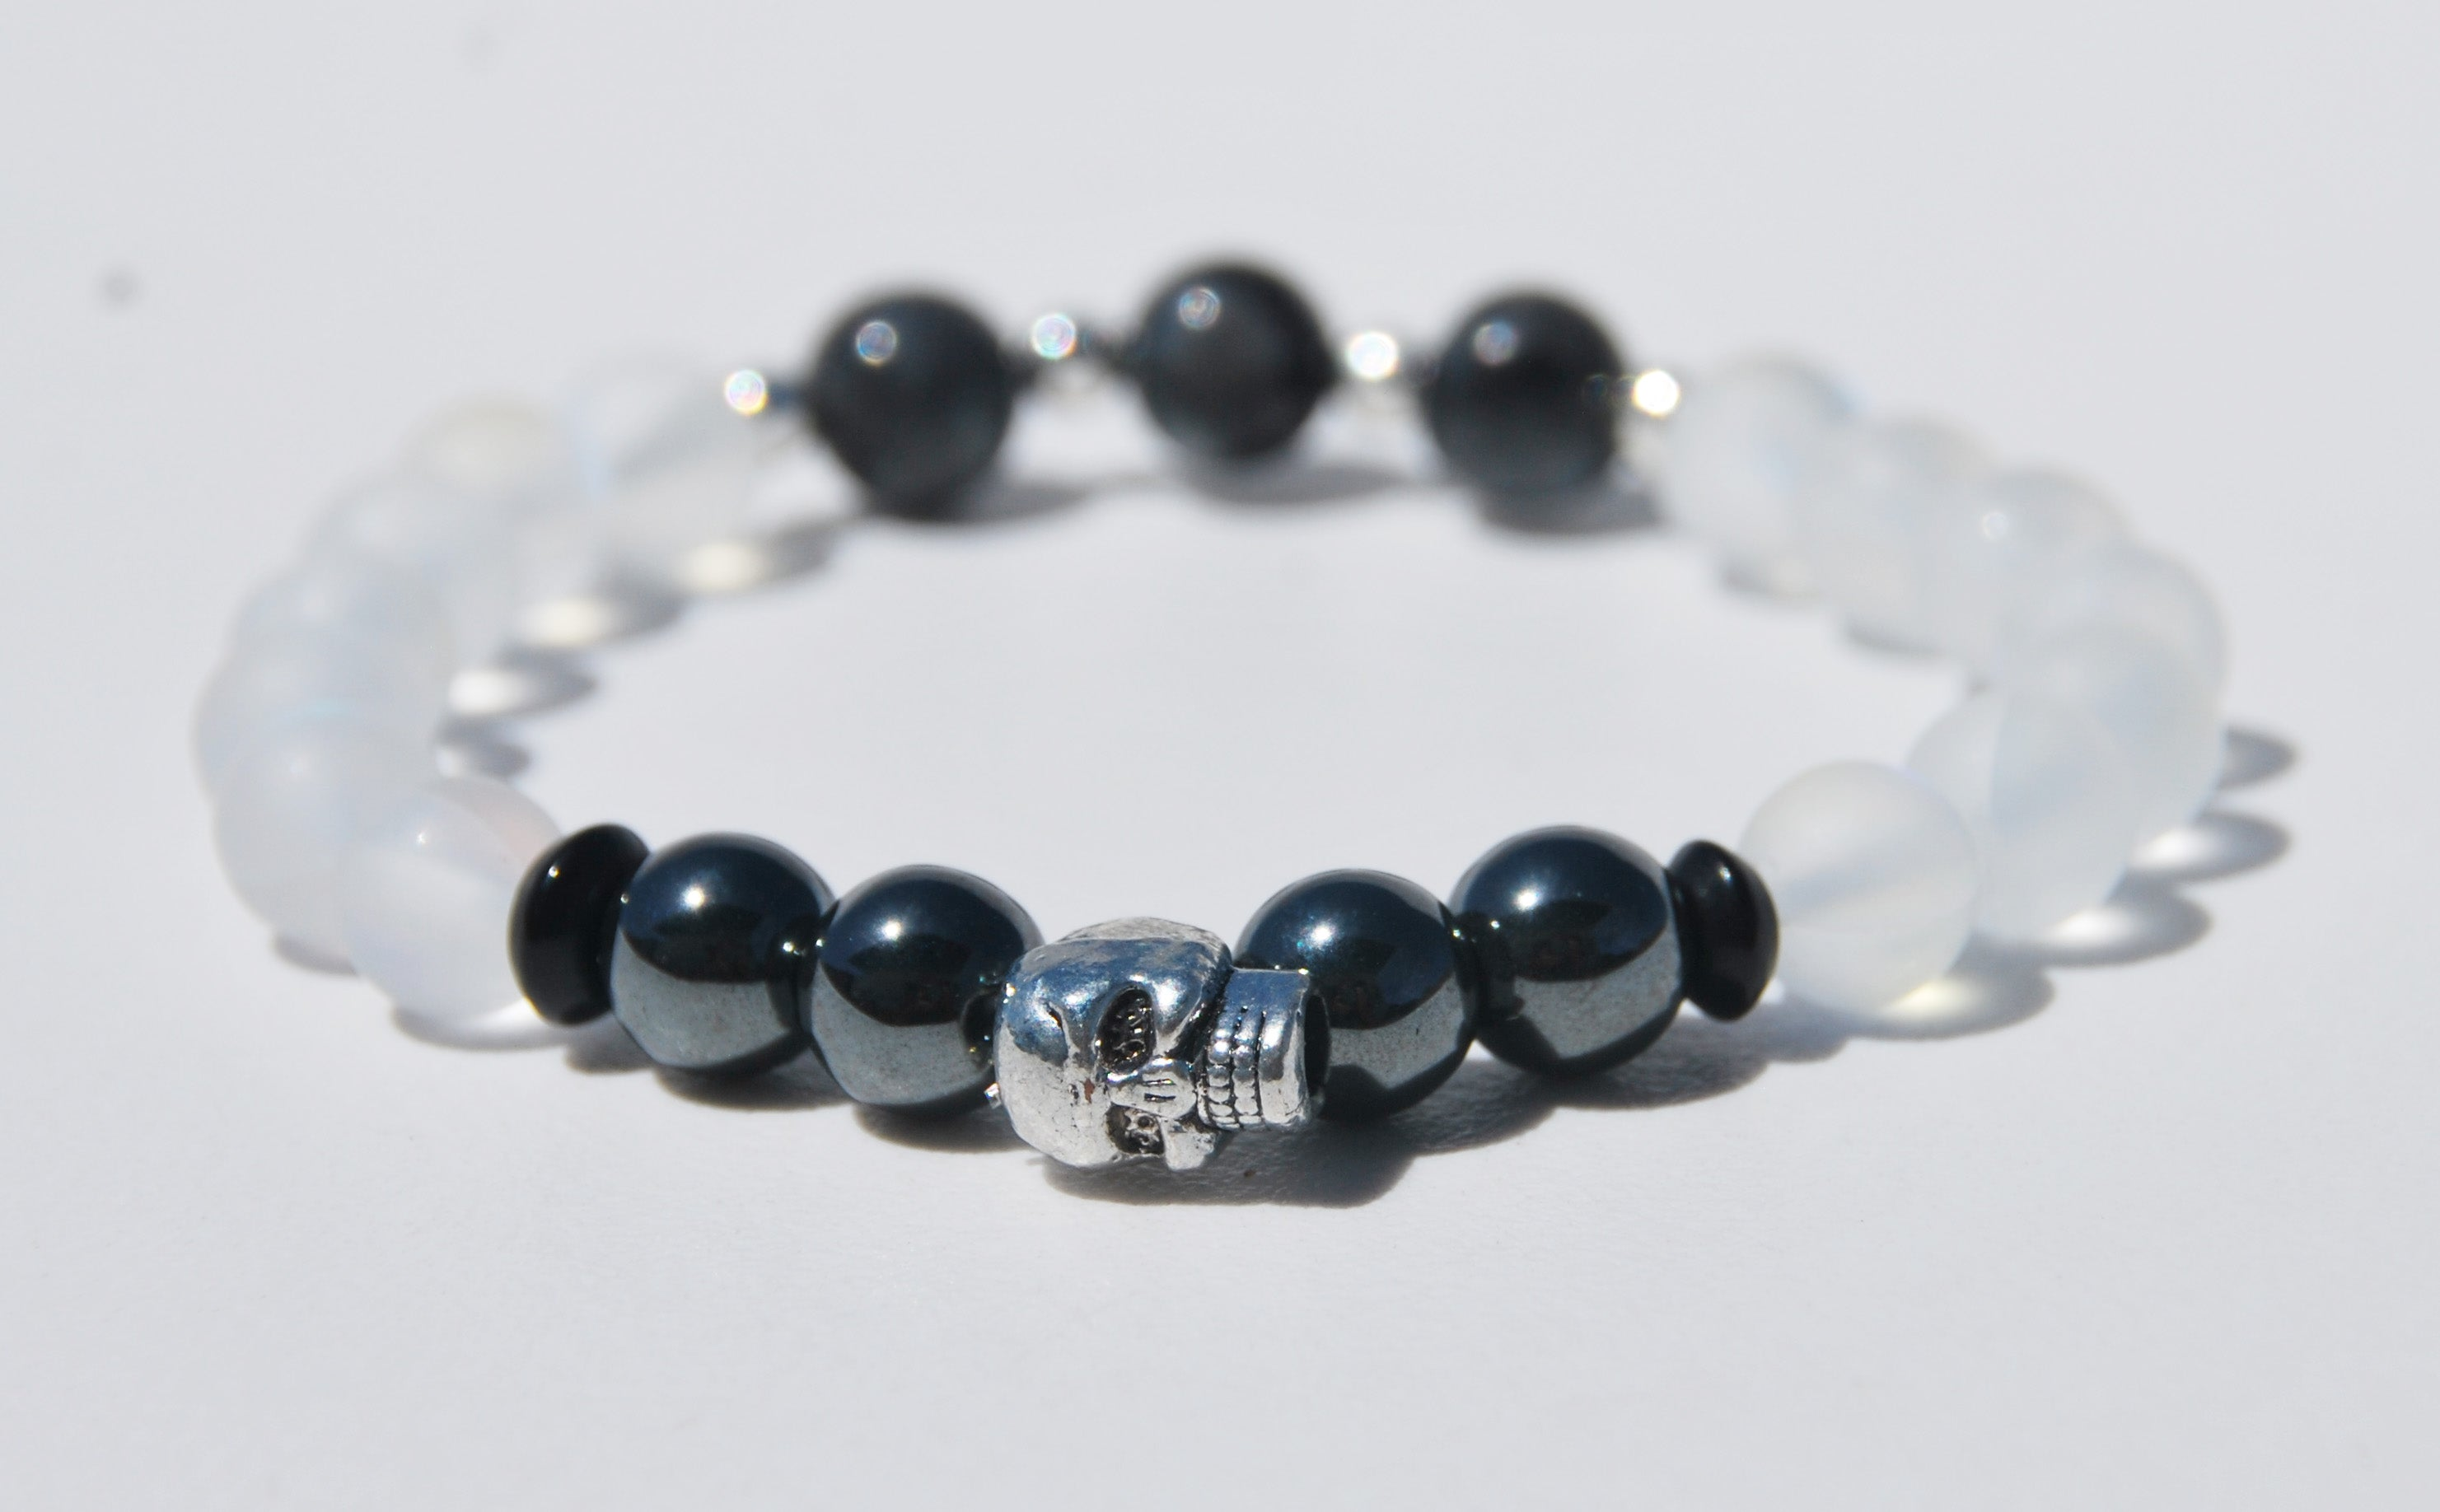 8mm Austrian Crystal, Hematite & Labradorite Stretch Bracelet with Skull